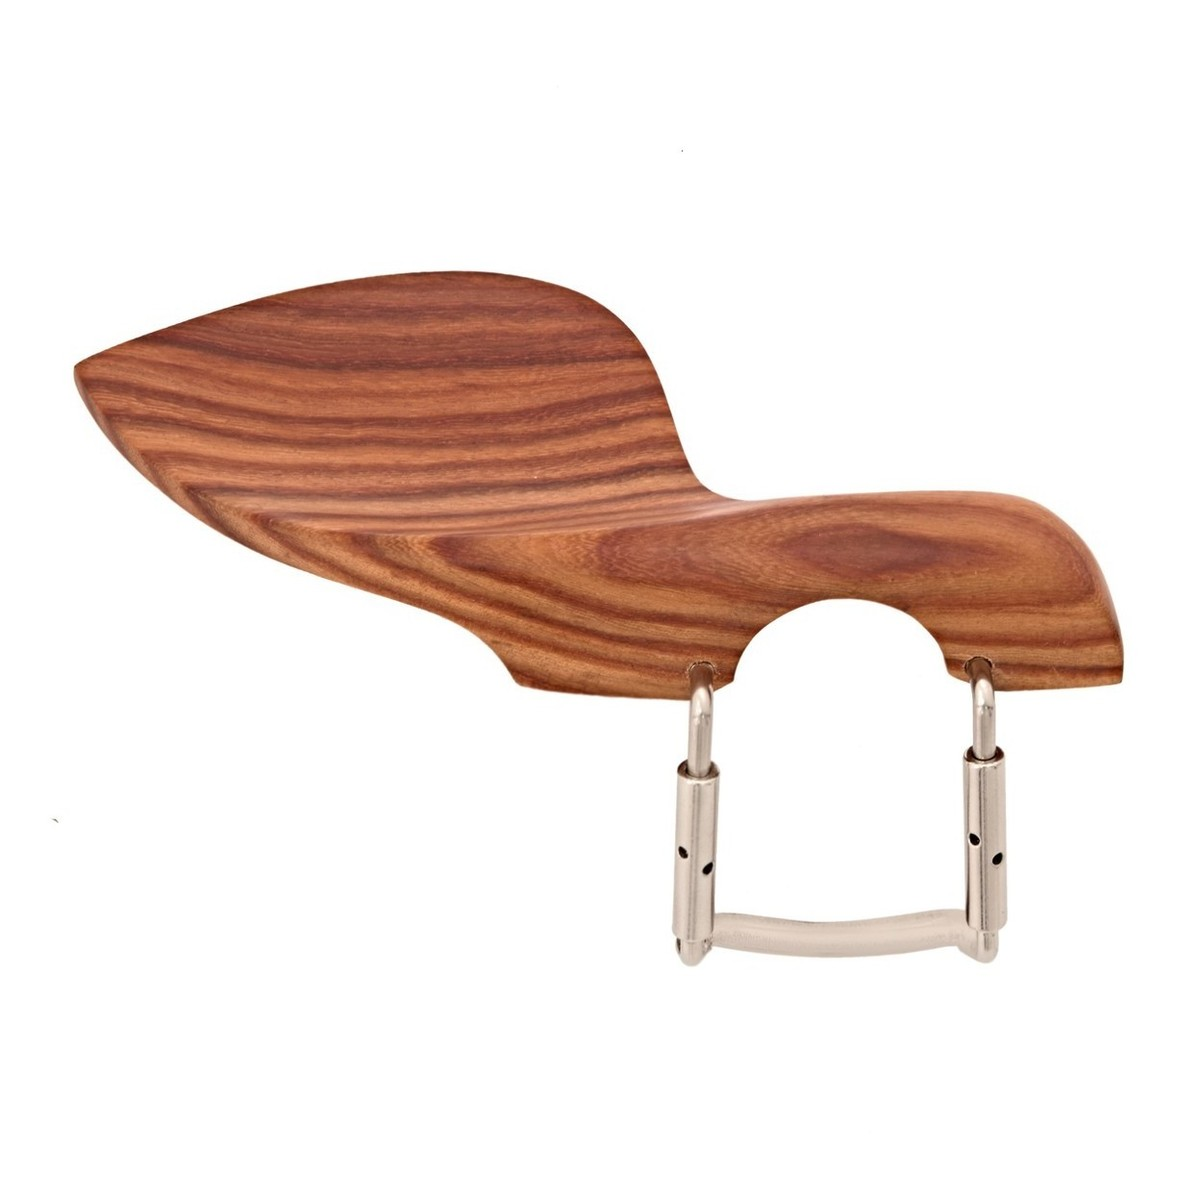 1/4 Size Chinrest by Gear4music Jujube